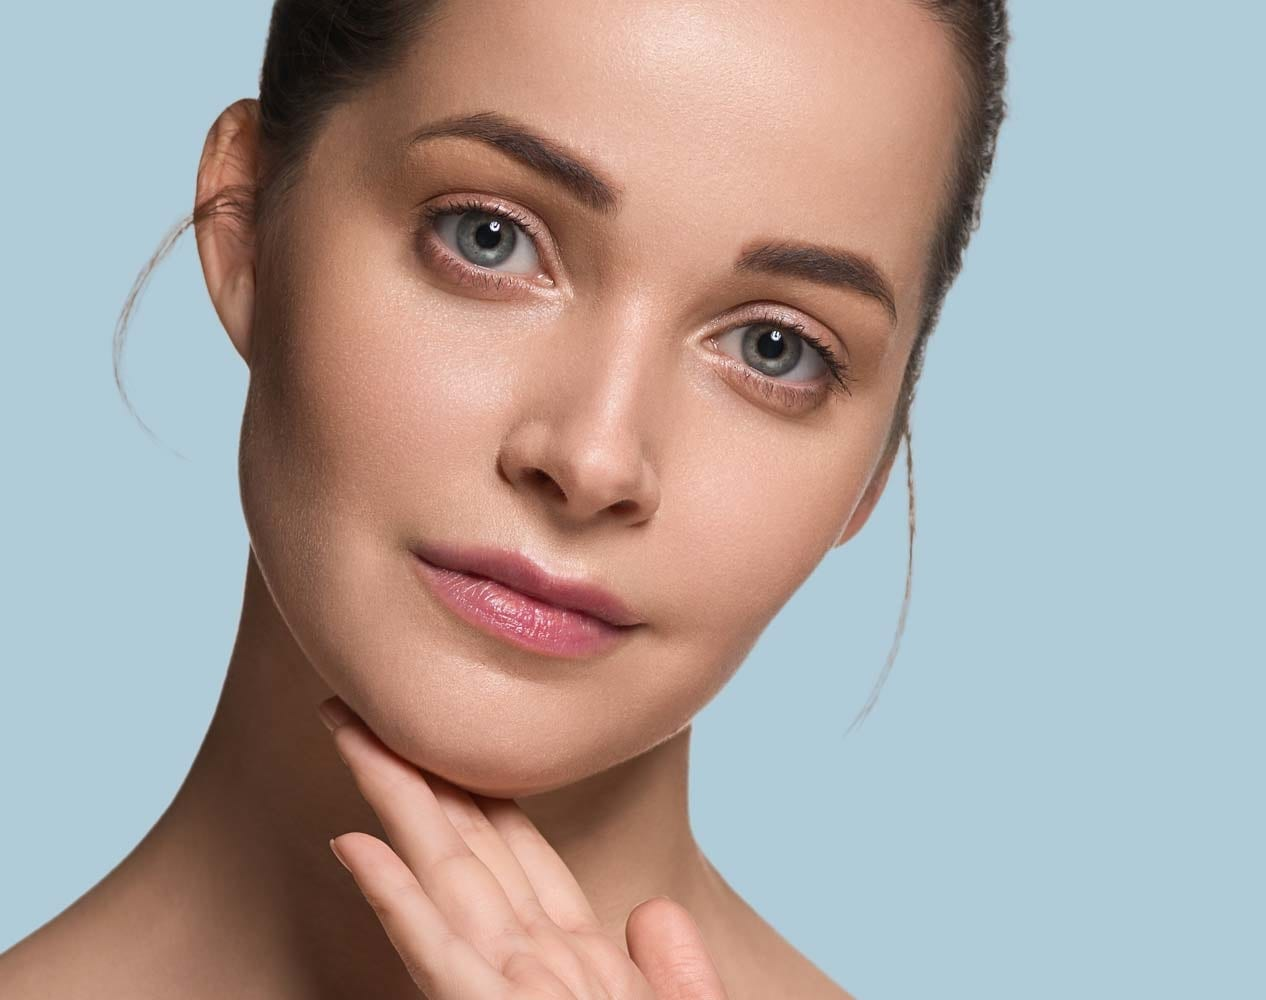 Trikwan - Obagi Pore and Congestion Reduction Facial